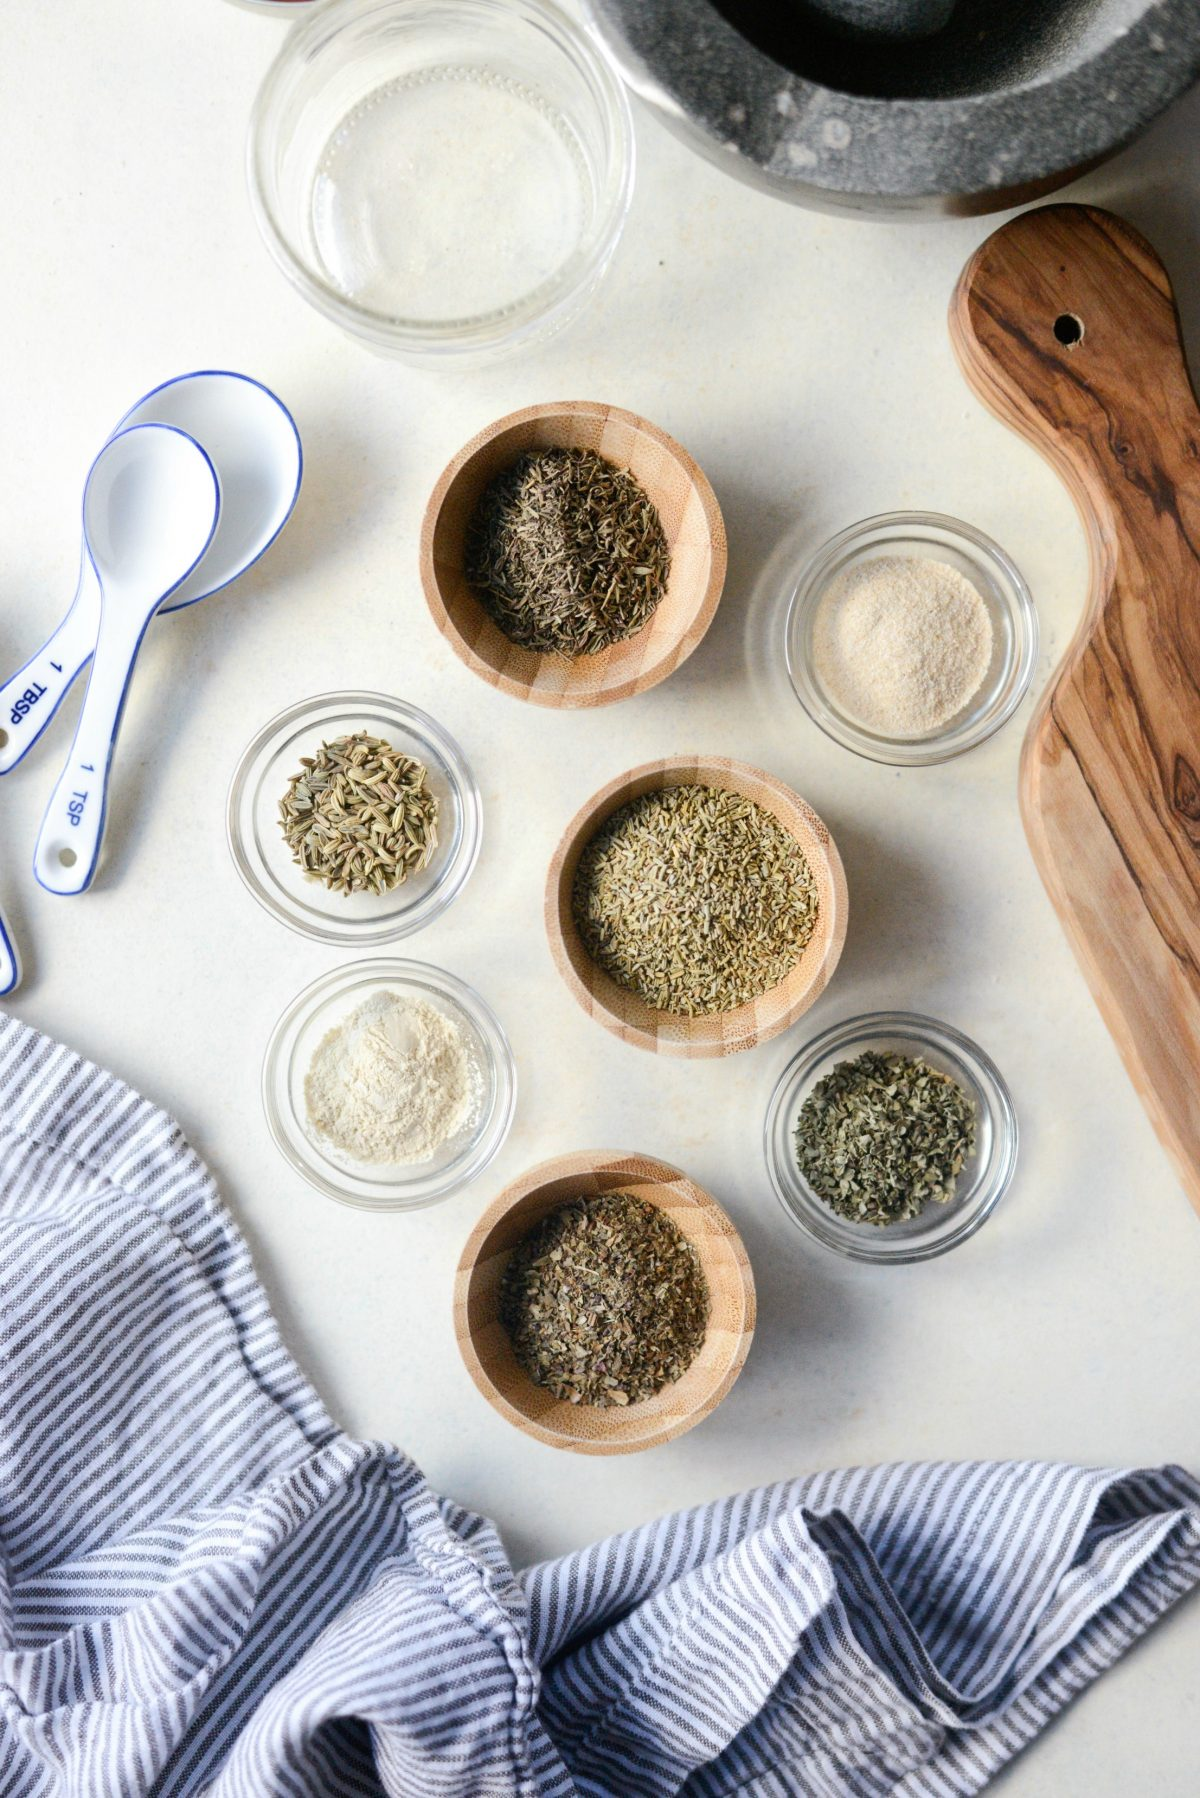 Homemade Tuscan Seasoning Blend